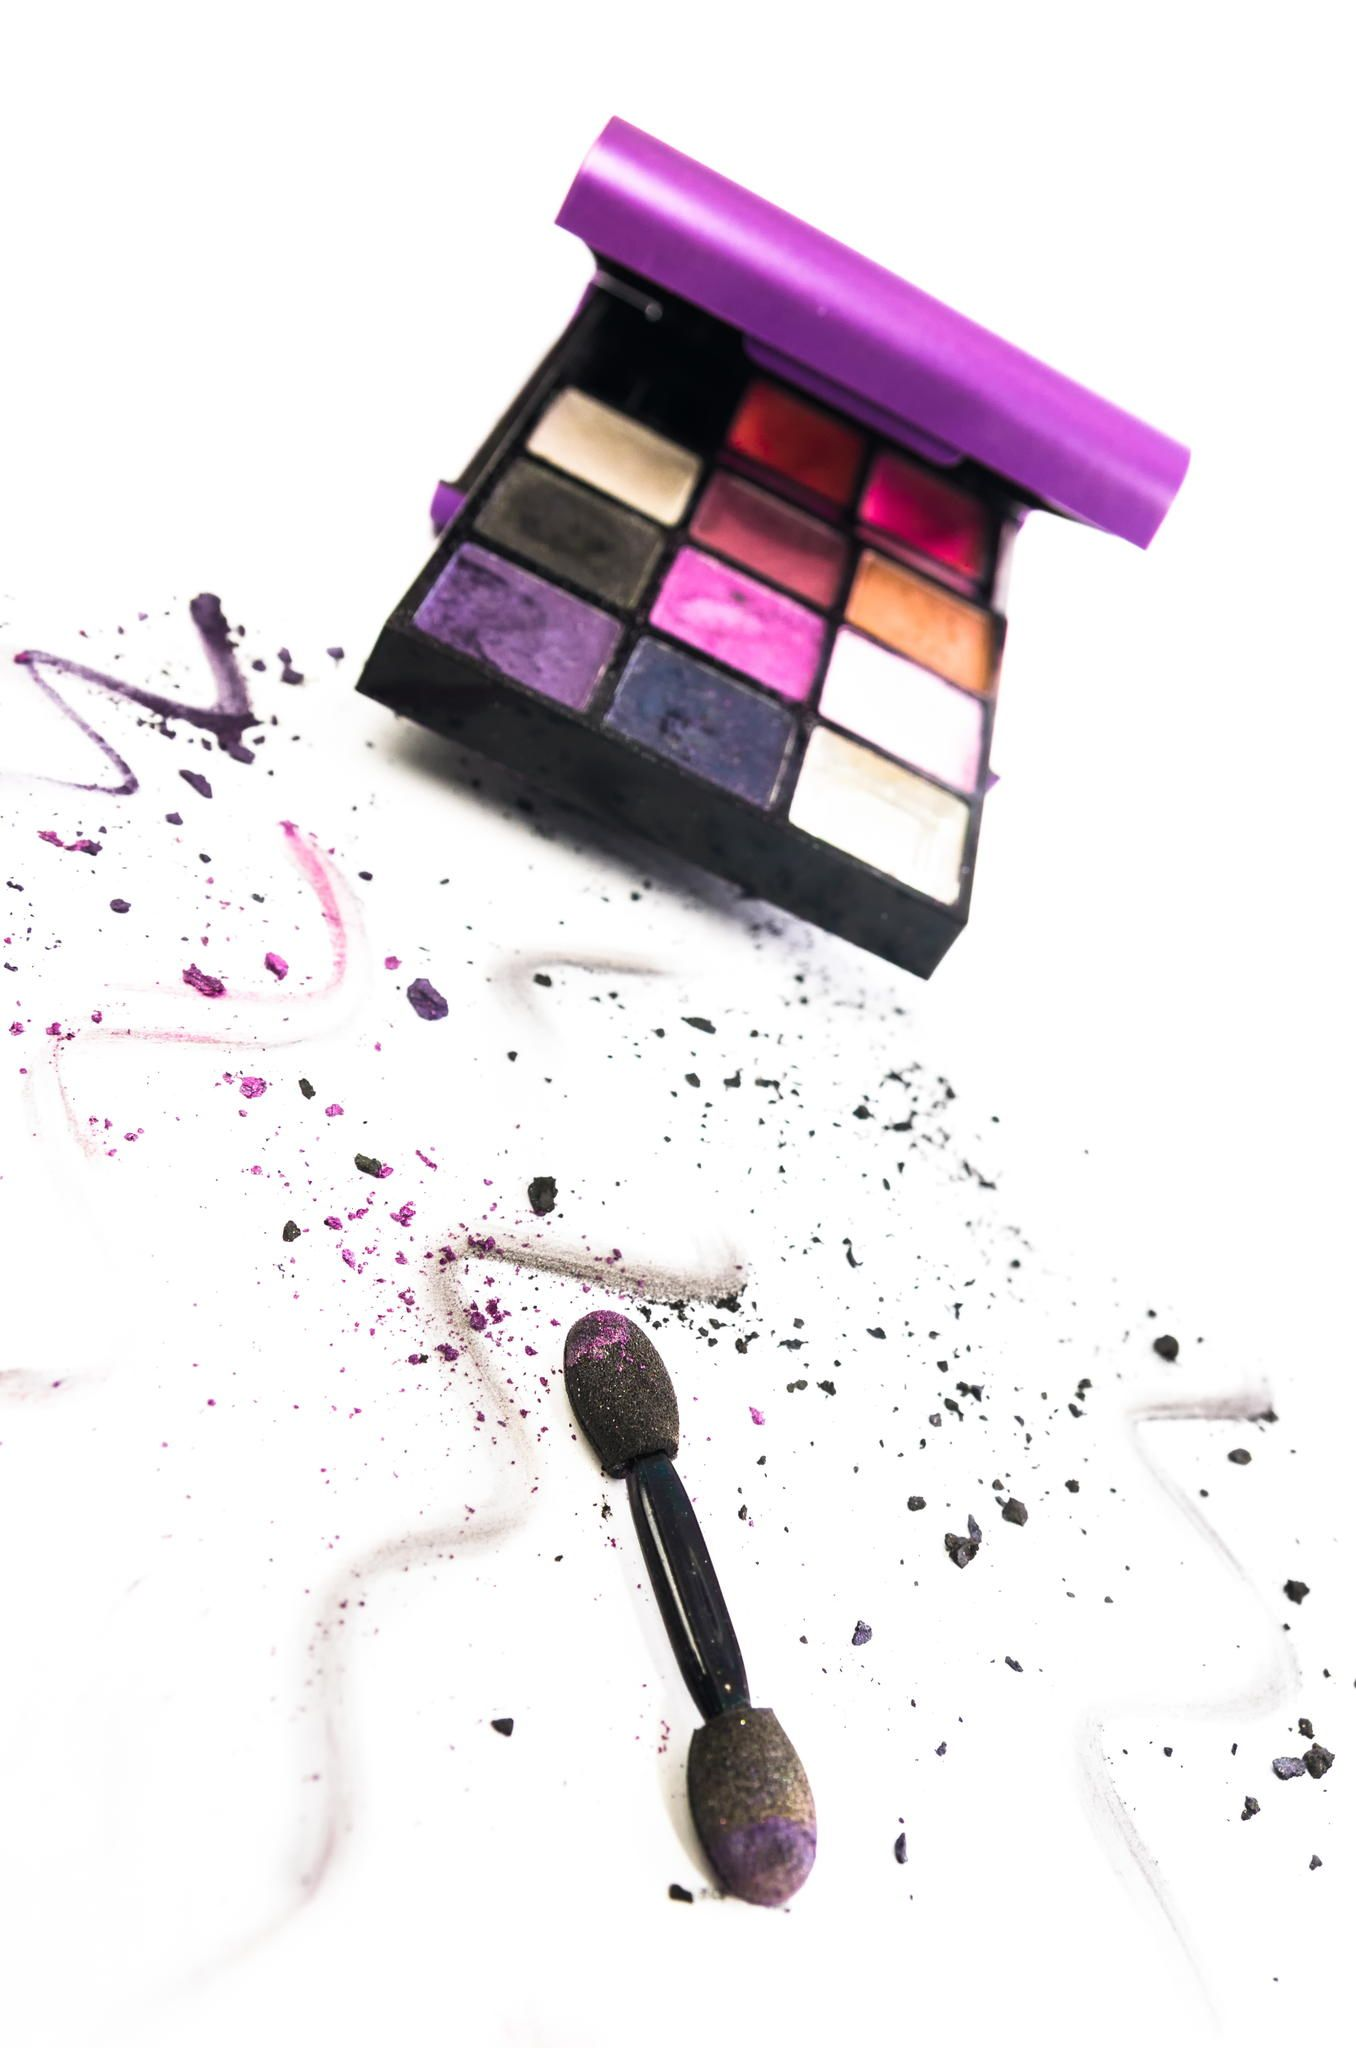 Colourful eye makeup - Artistic arrangement of colourful eye makeup in a box with an applicator and scattered remnants and squiggles of powdered cosmetic in the foreground on white